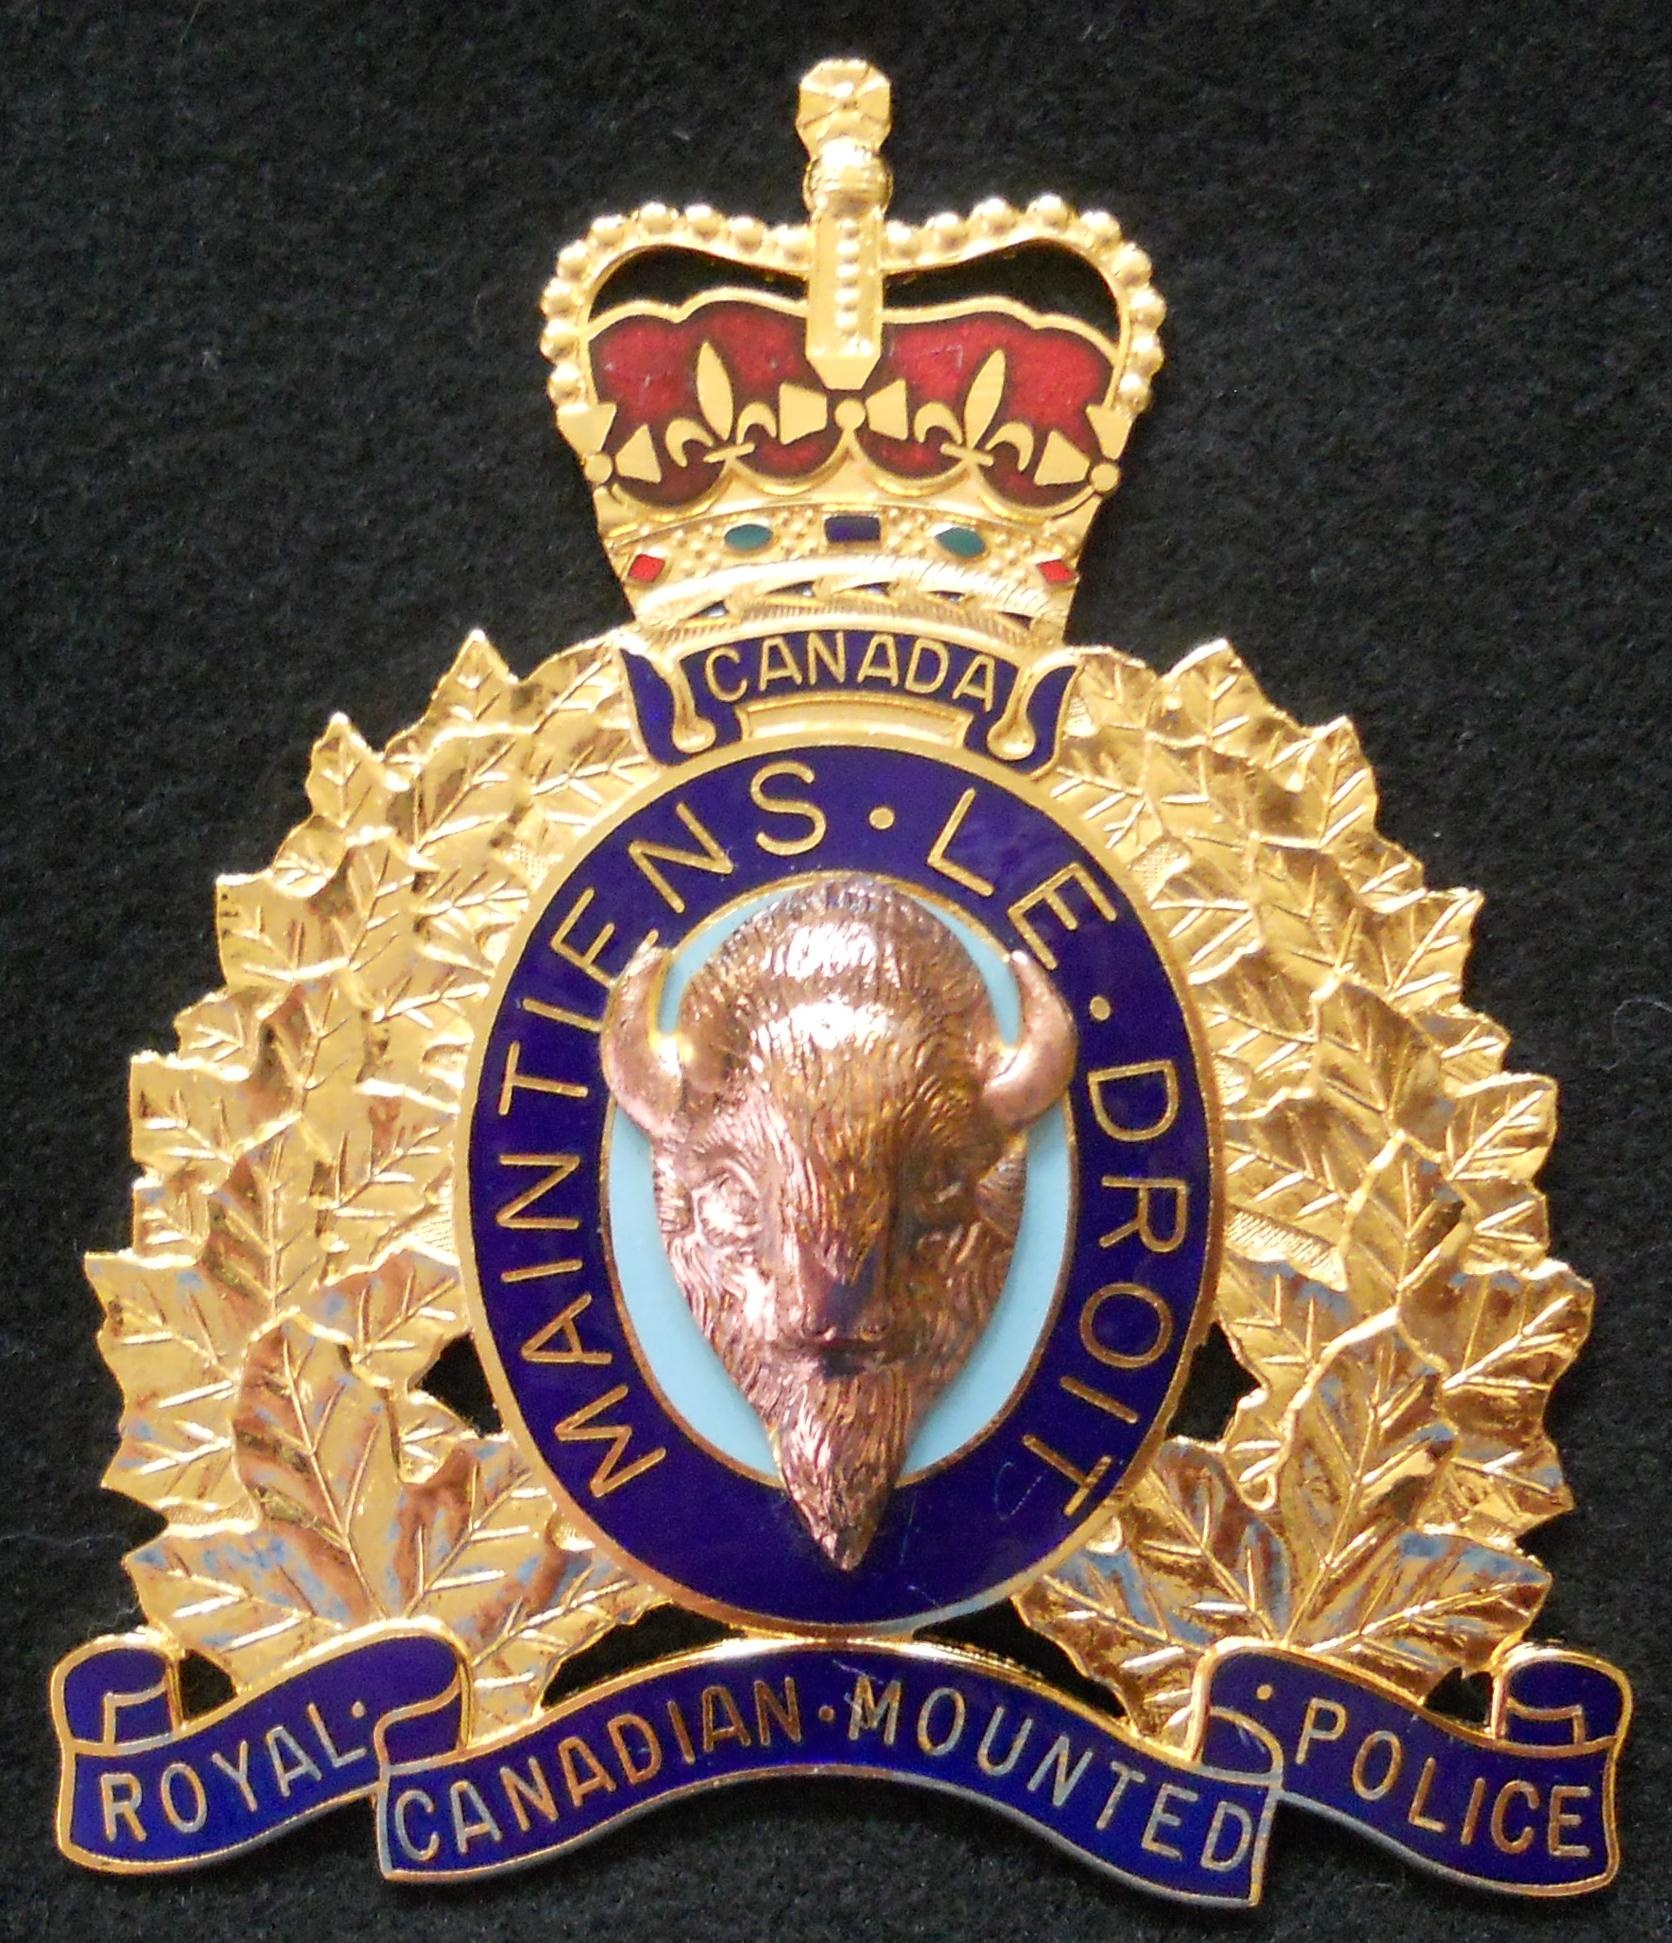 WOMAN DELIVERY DRIVER KILLED IN STRATHCONA COUNTY CRASH